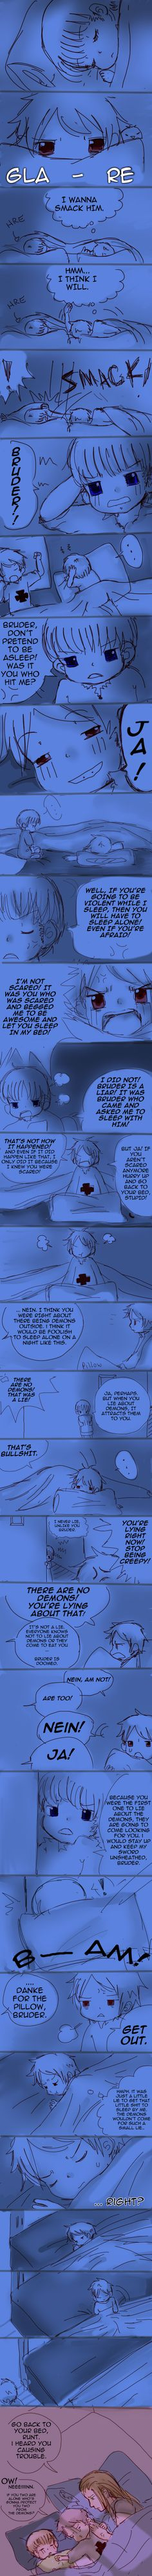 APH: Don't lie about Demons by Assby.deviantart.com on @deviantART - Aw...this is really funny: Gilbert and HRE trolling each other when they were kids. :P